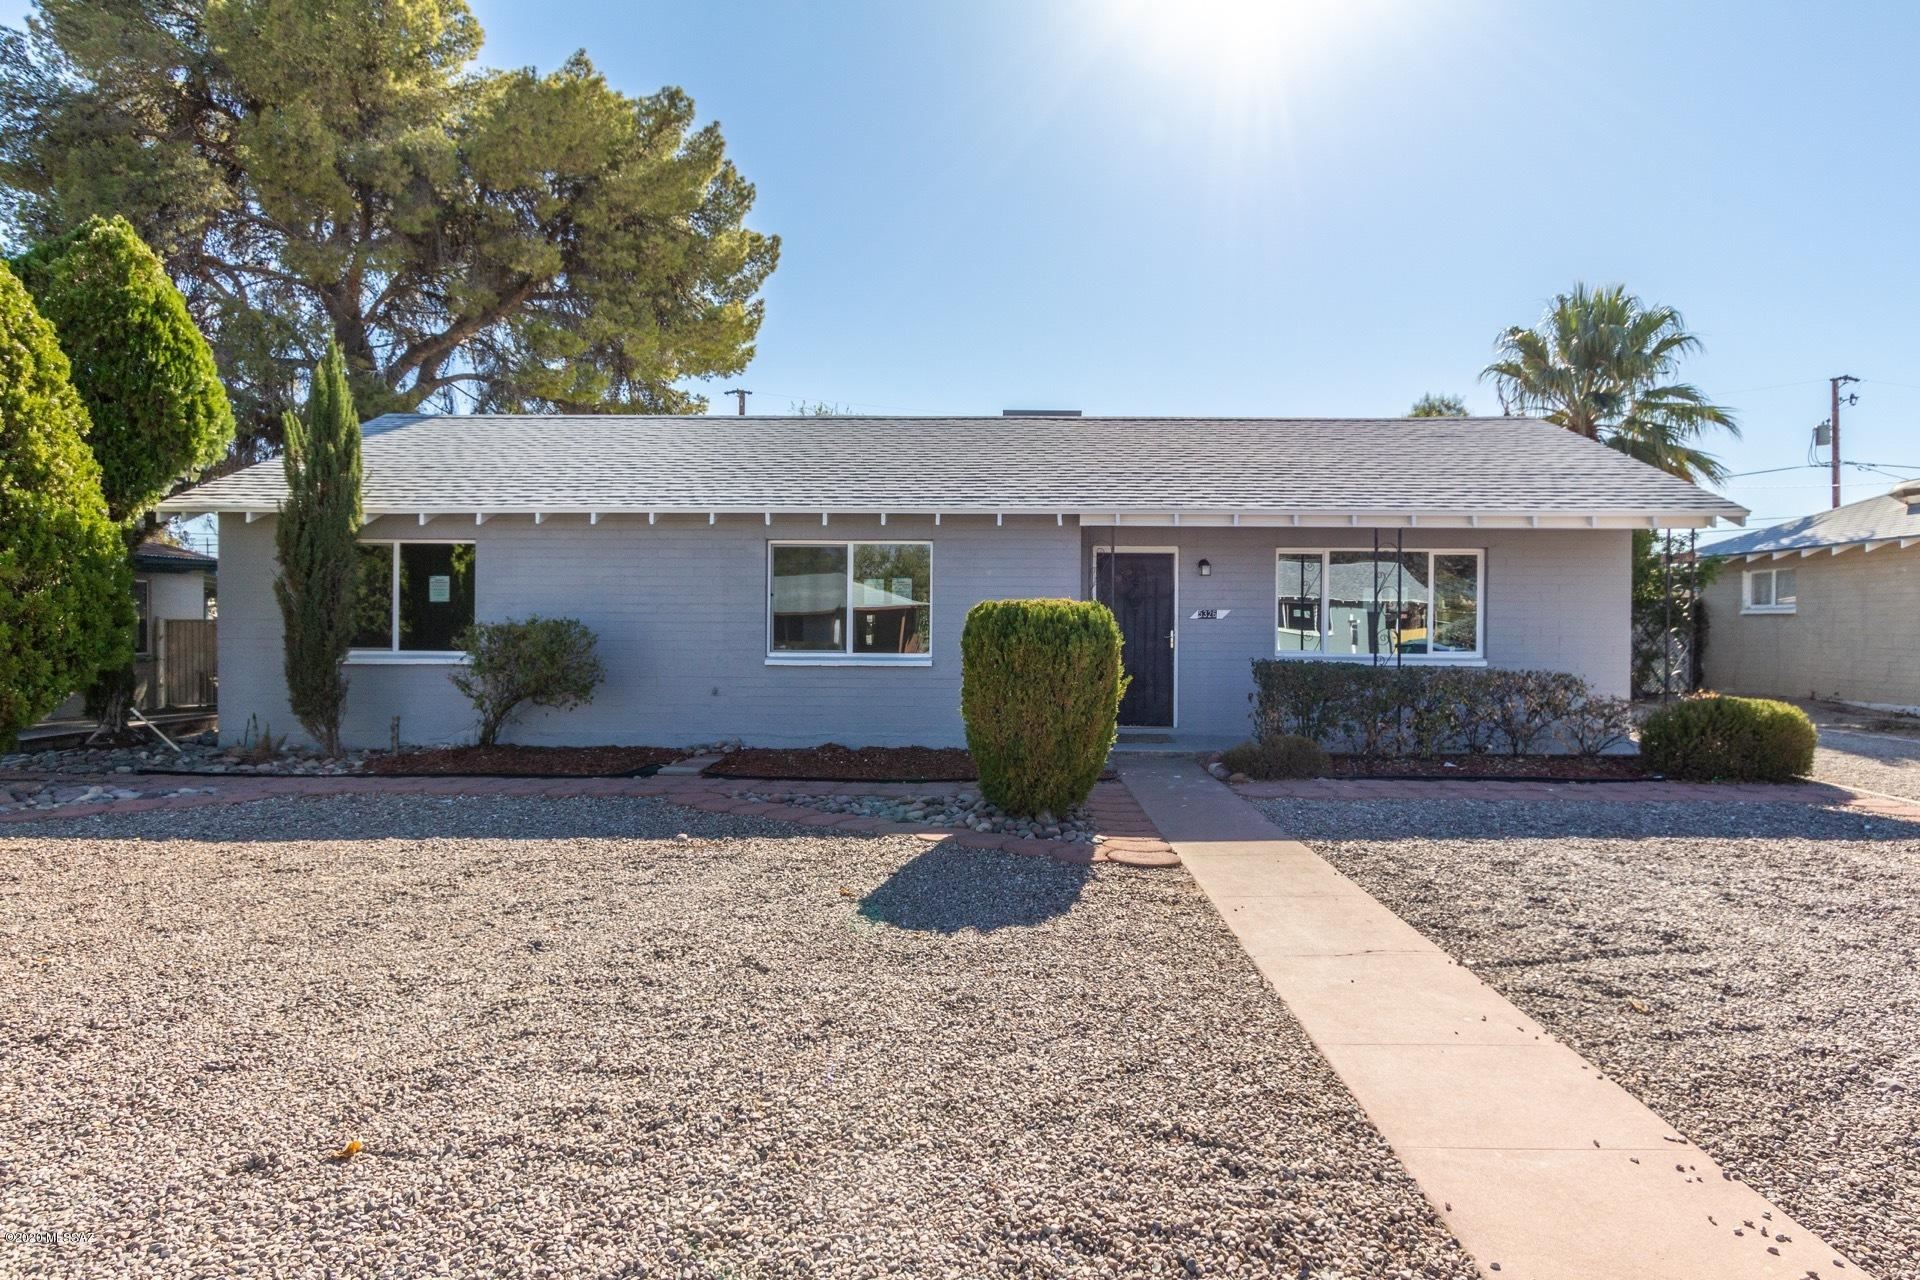 5326 E 20Th Street, Tucson, AZ 85711 - MLS#: 22029782